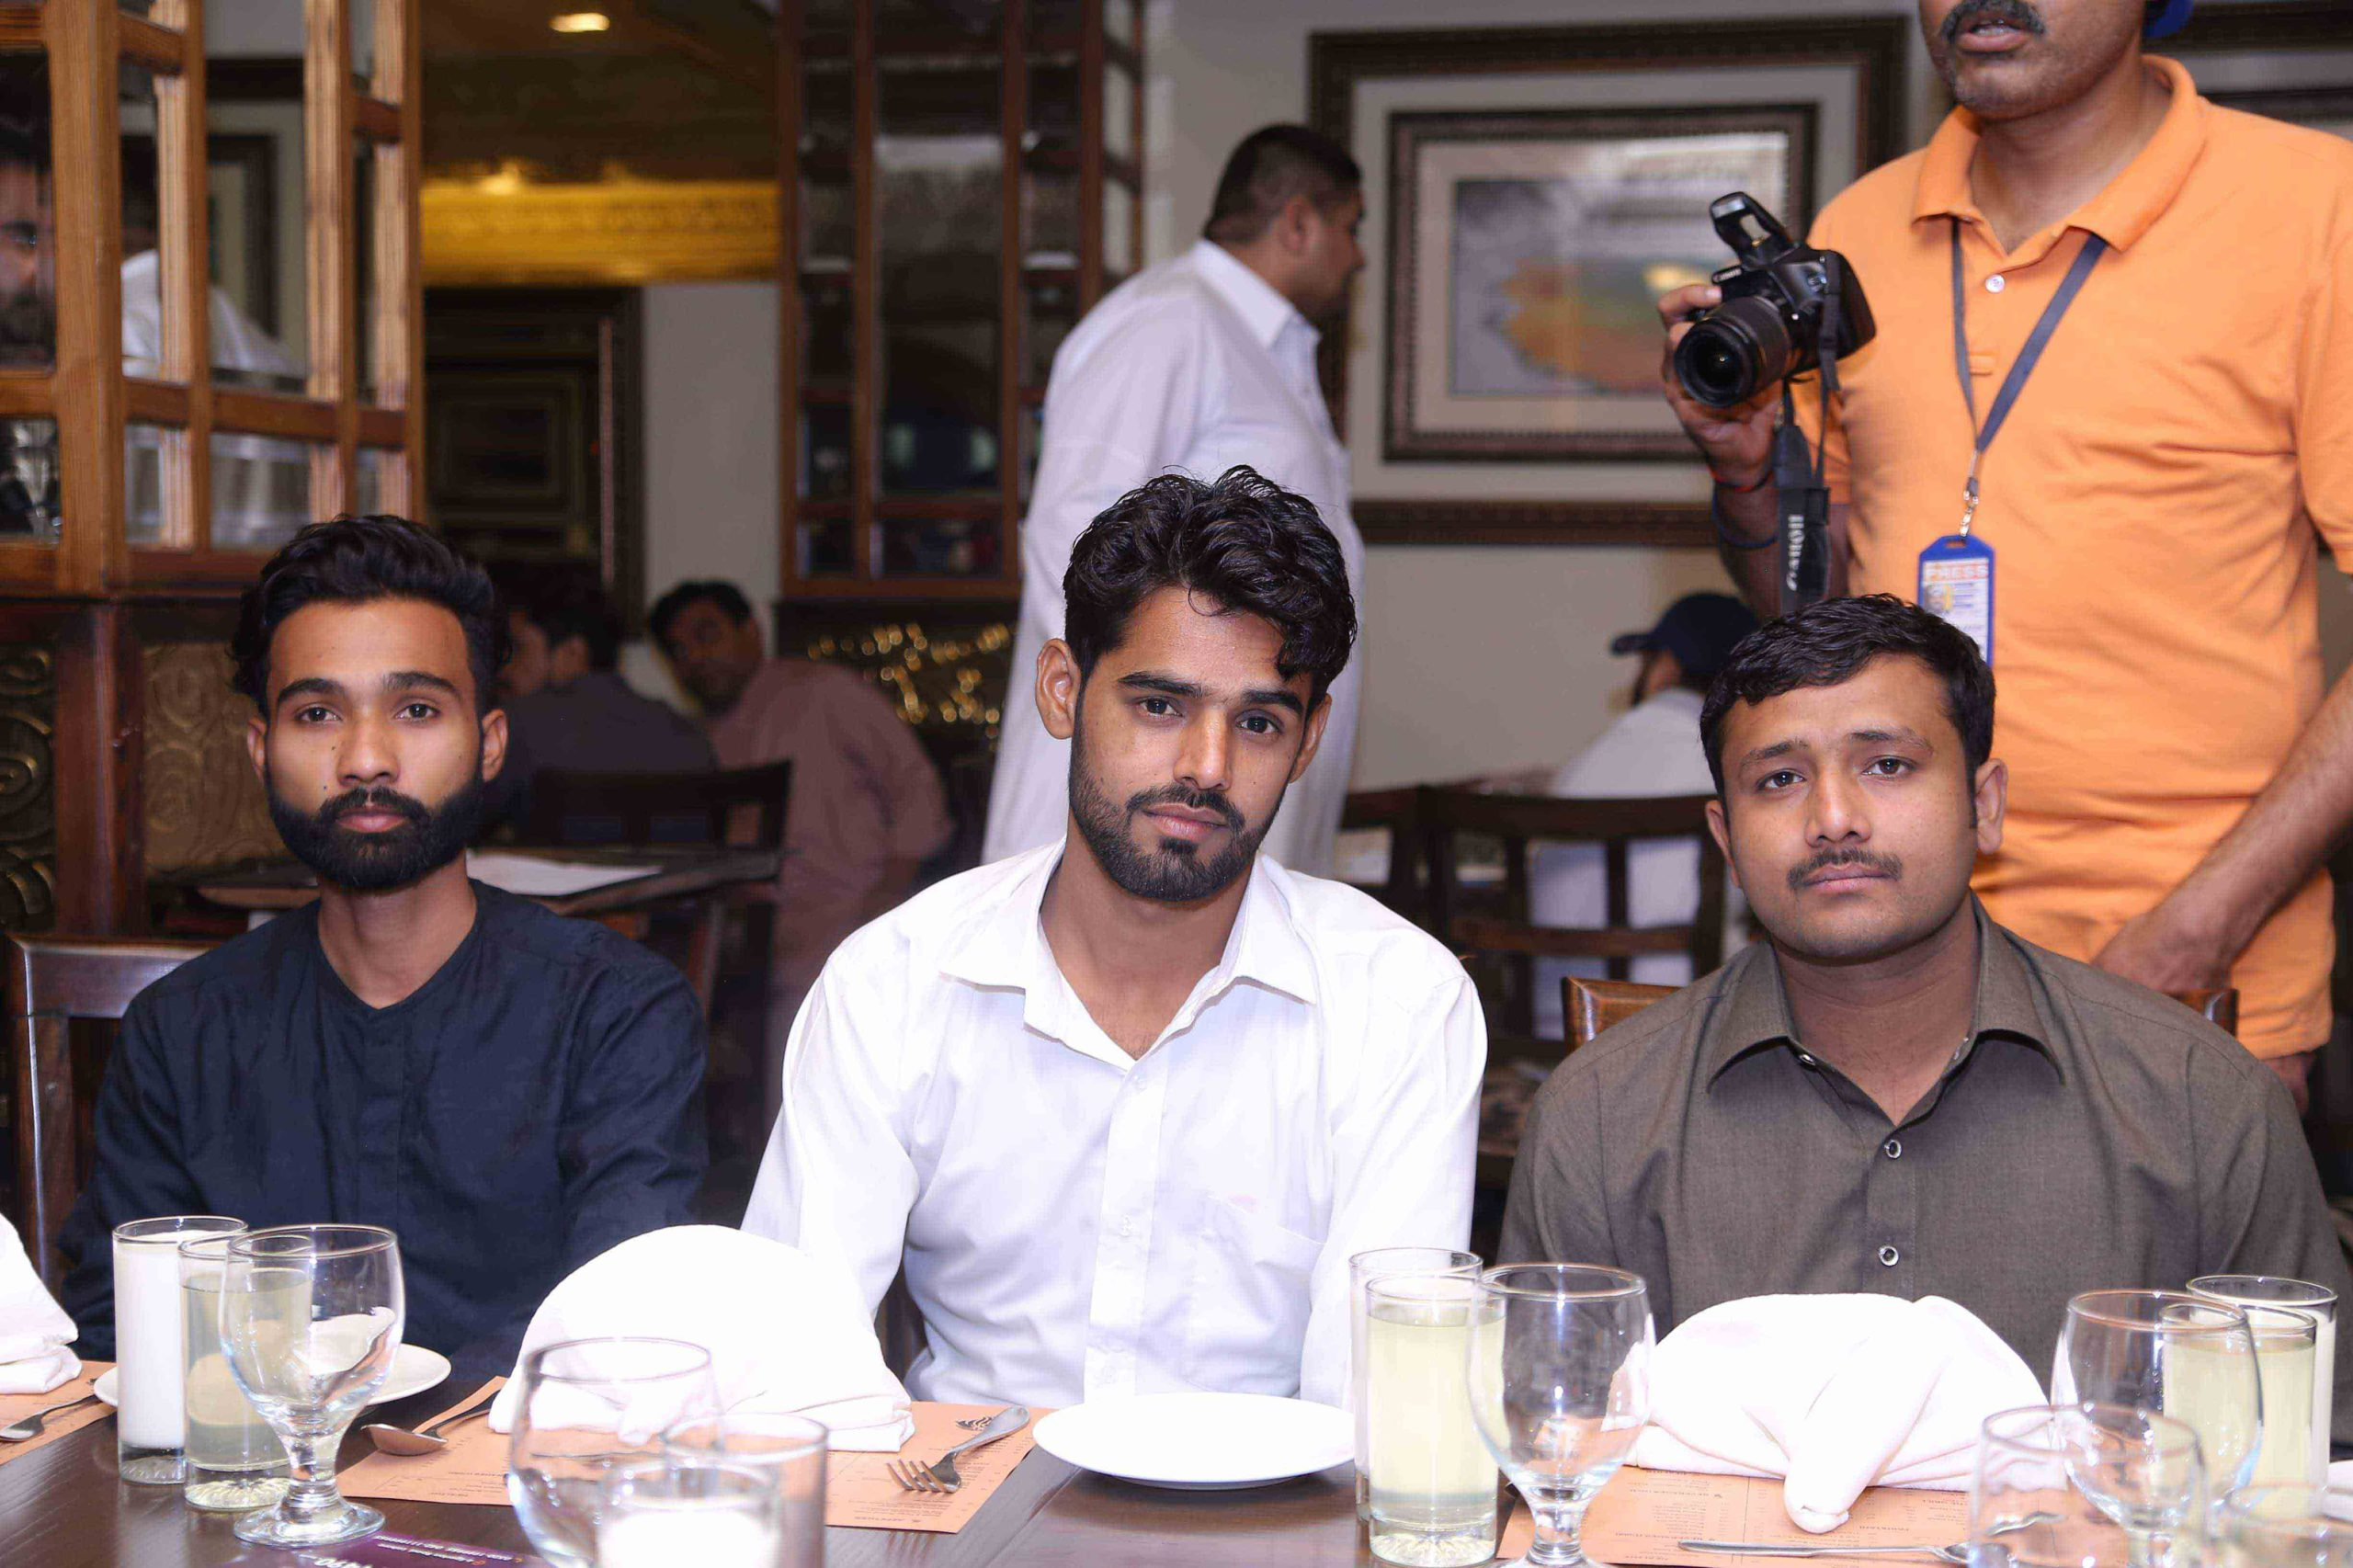 STAFF_ANNUAL_DINNER_&_IFTAR_PARTTY_34